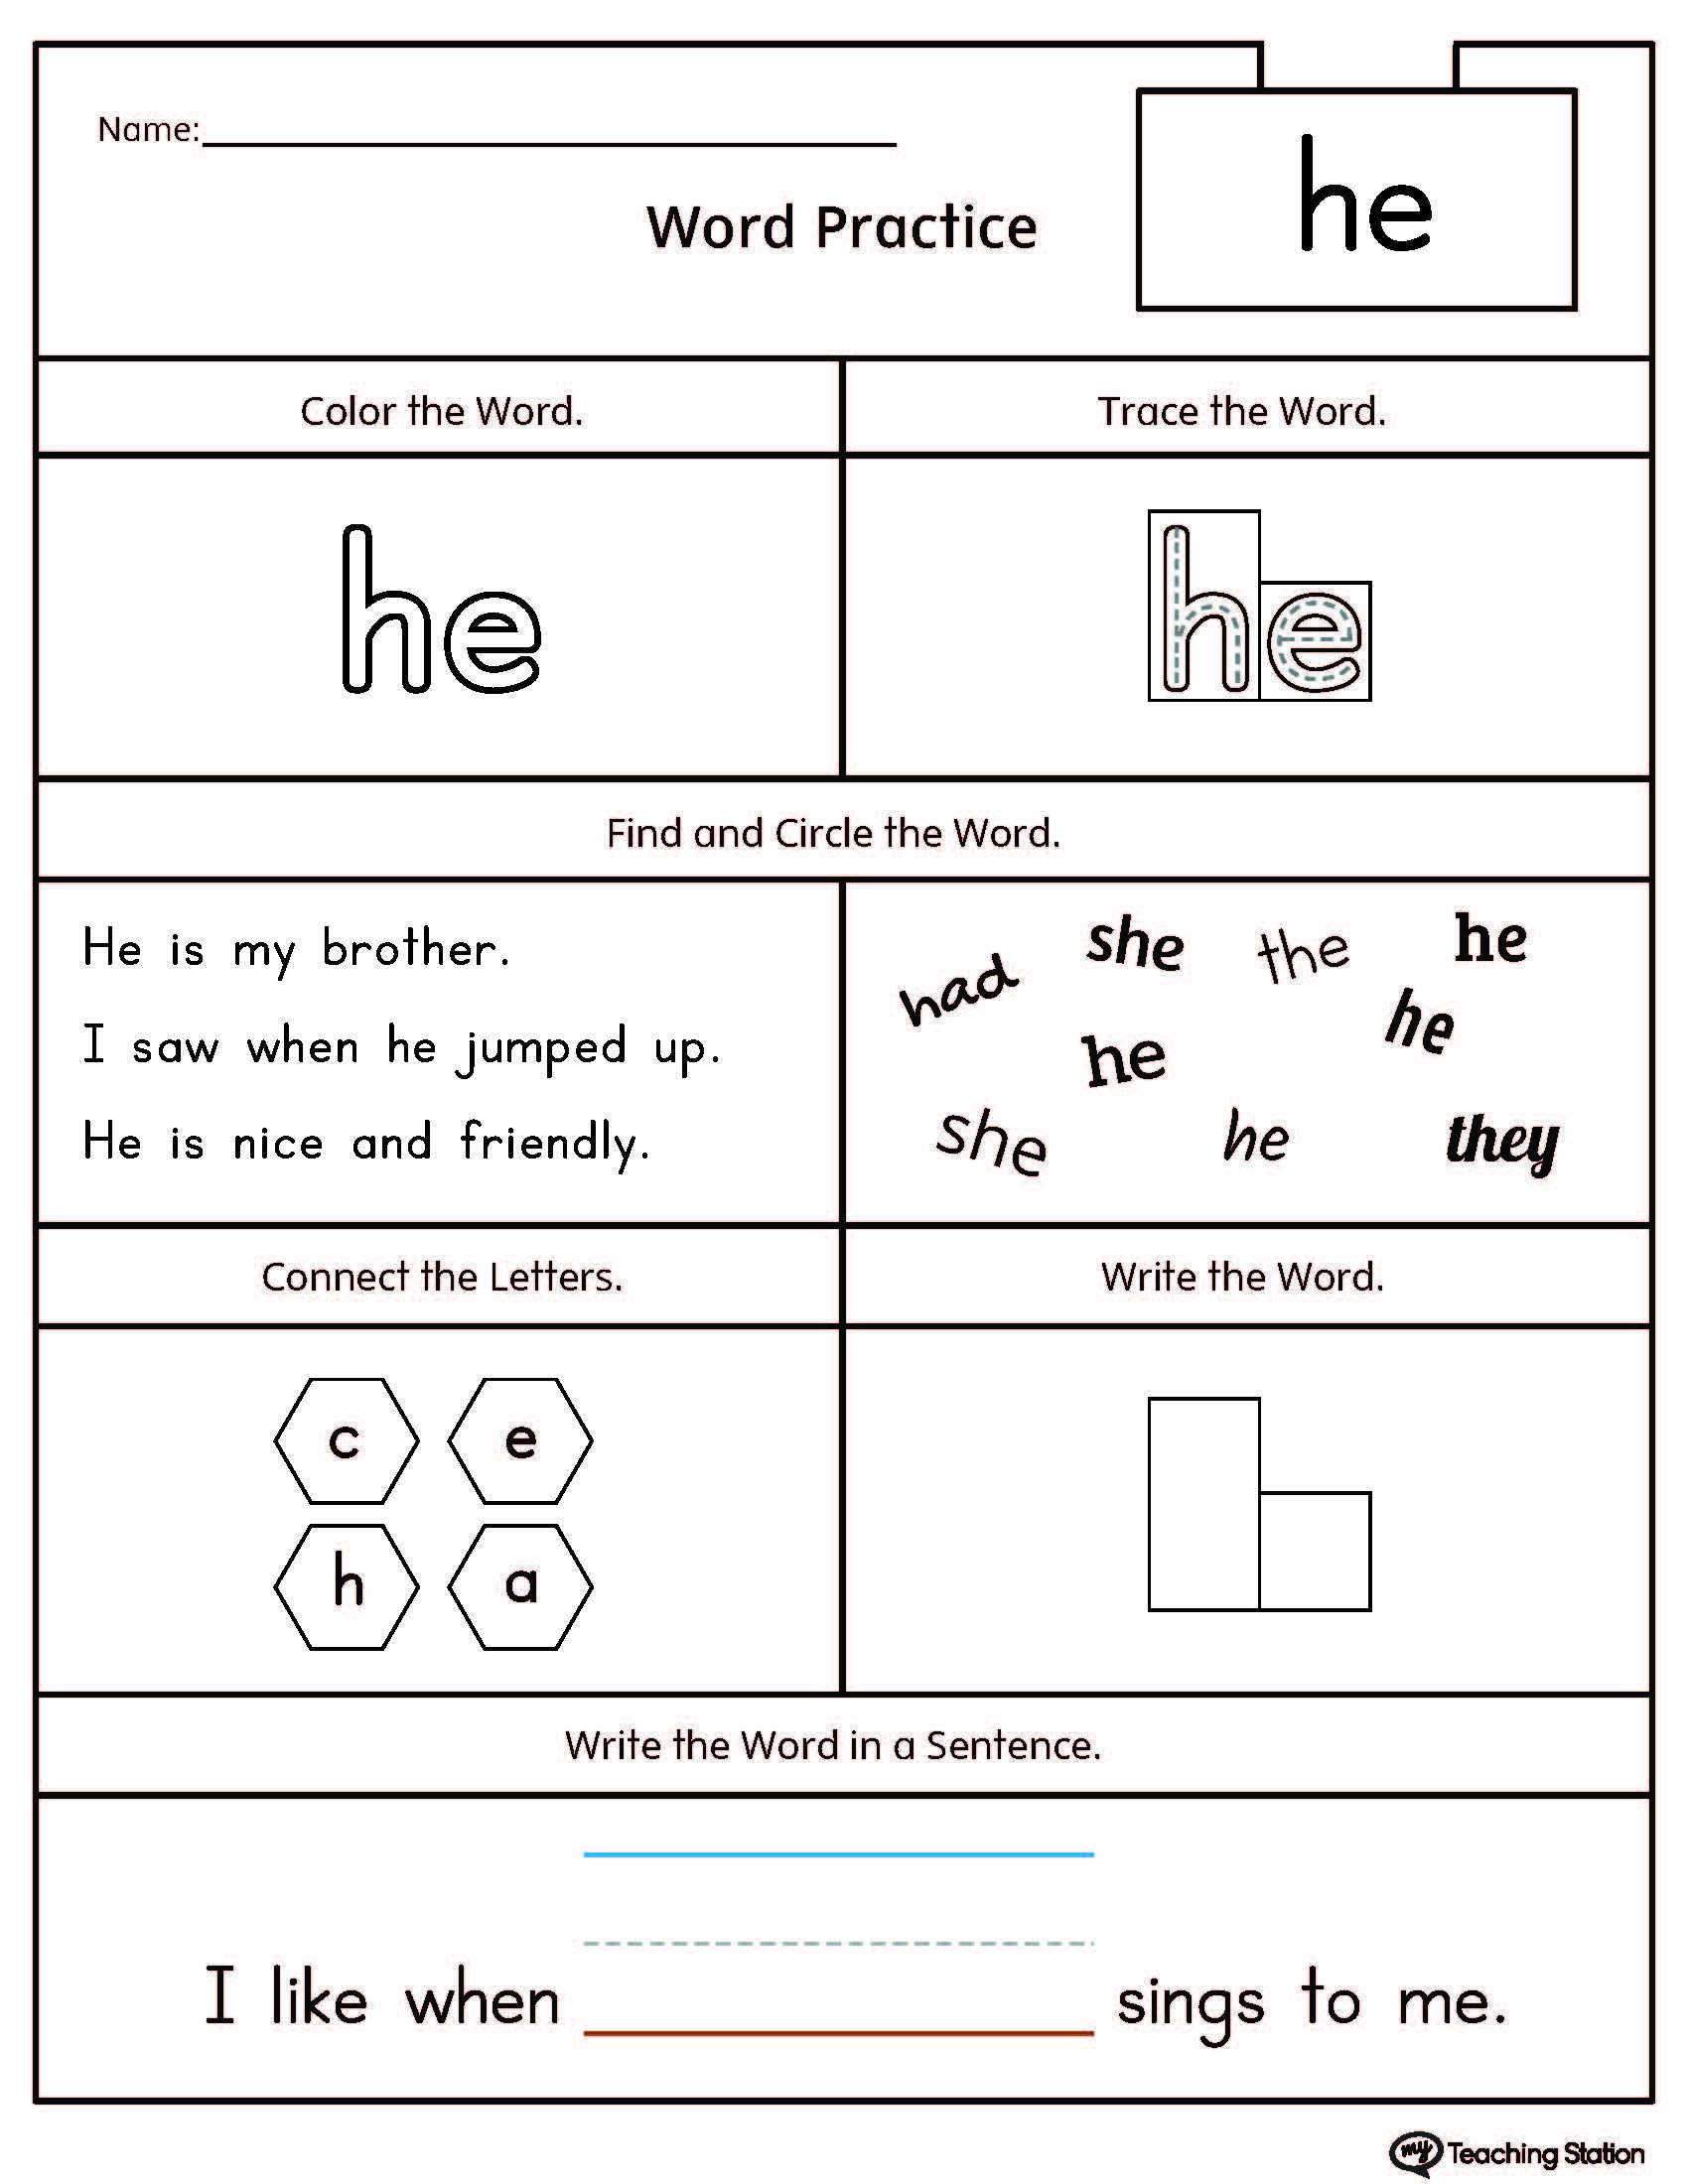 worksheet Site Word Worksheets high frequency word he printable worksheet myteachingstation com worksheet